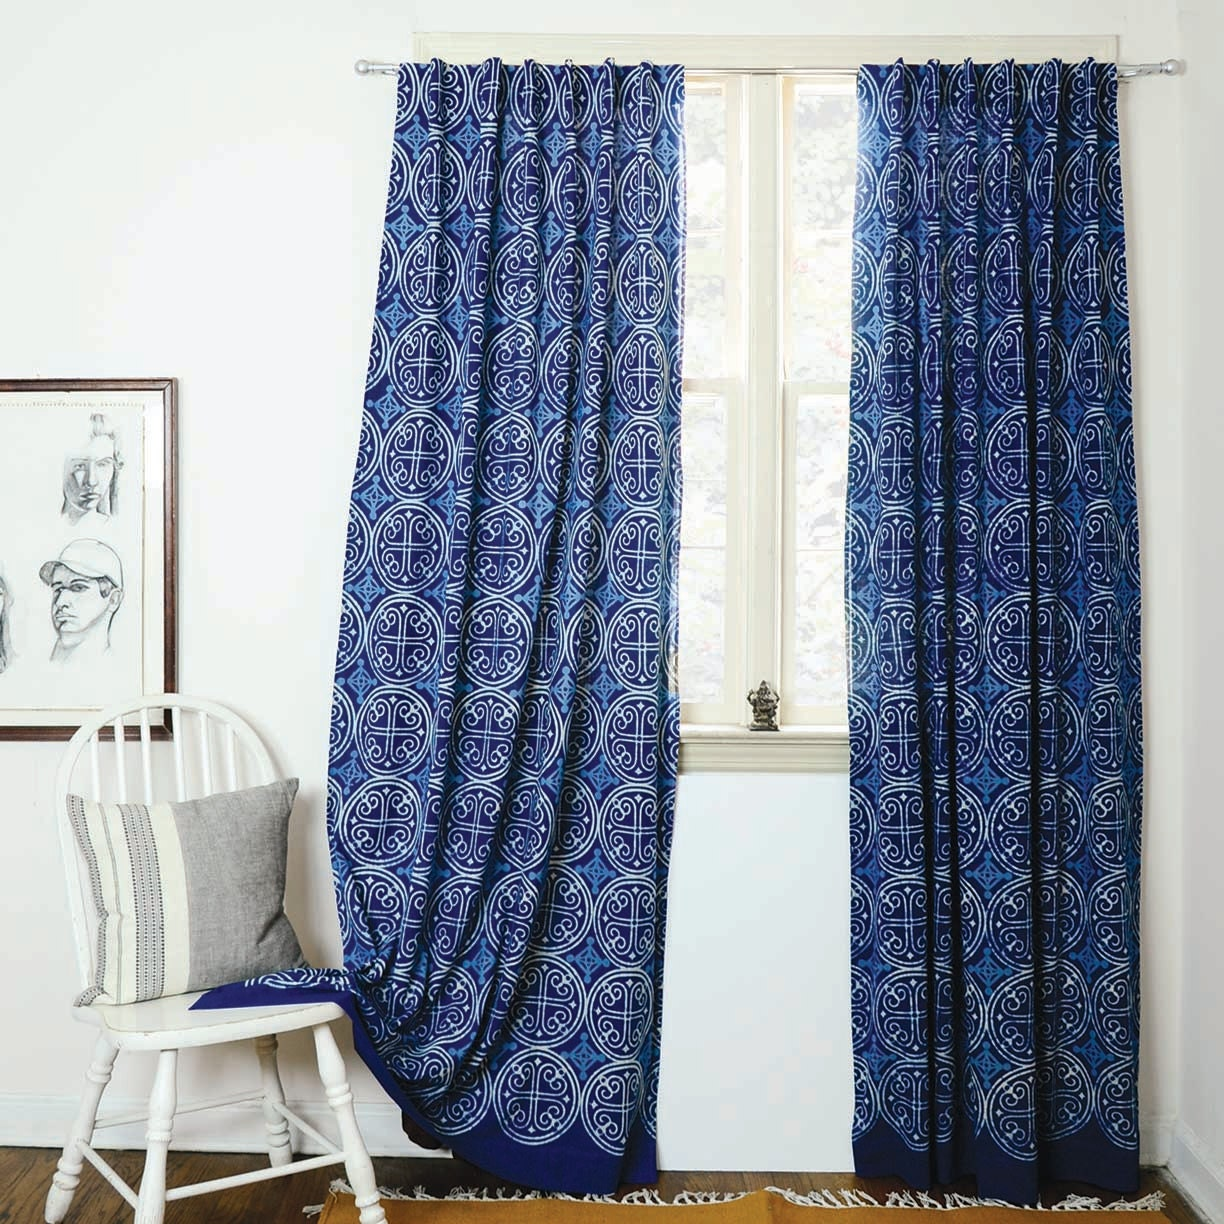 Indigo curtains Blue curtains window boho bedroom home decor block print  home living ONE panel - GREECE indigo 56\